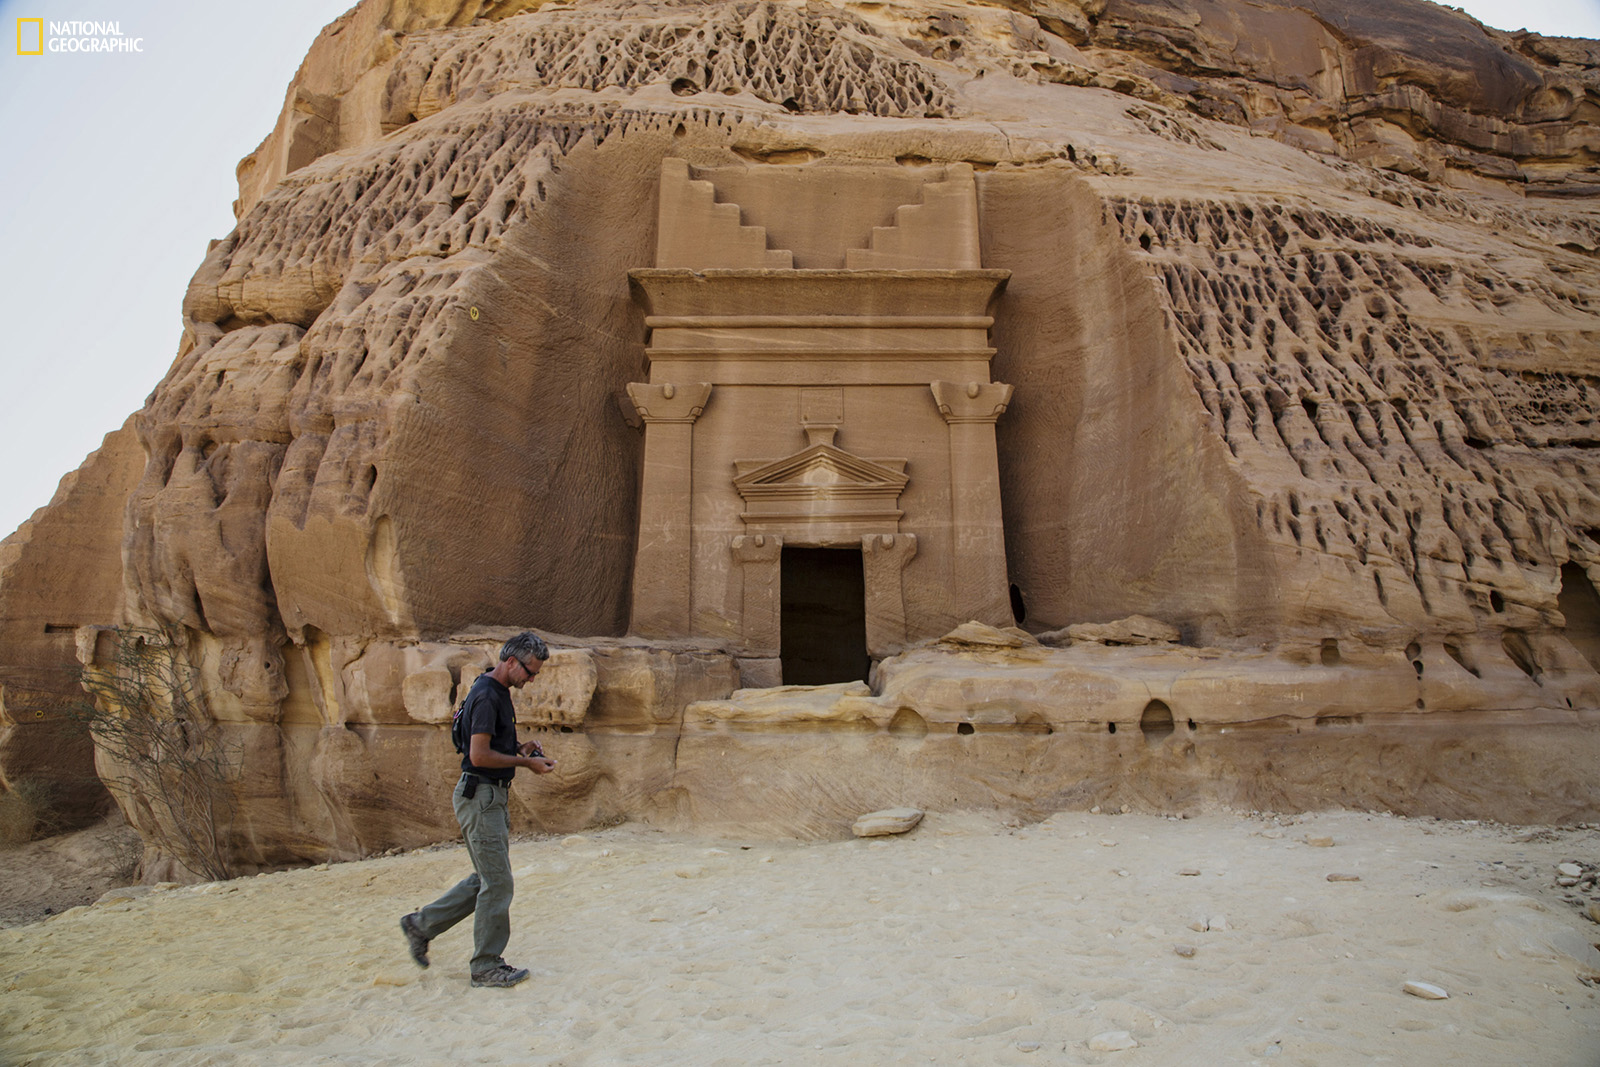 Paul Salopek wanders through the ancient Nabataean ruins of Madain Salih, carved into sandstone outcrops some 2,000 years ago. These structures were used as tombs for the wealthy during the Nabataean era. The kingdom stretched from its capital Petra in Jordan south to Madain Salih in the Hejaz region of present-day Saudi Arabia. Photo shows a tomb façade in the Al Khuraymat area of Madain Salih. Join the journey at outofedenwalk.org.Photograph by John Stanmeyer / National Geographic